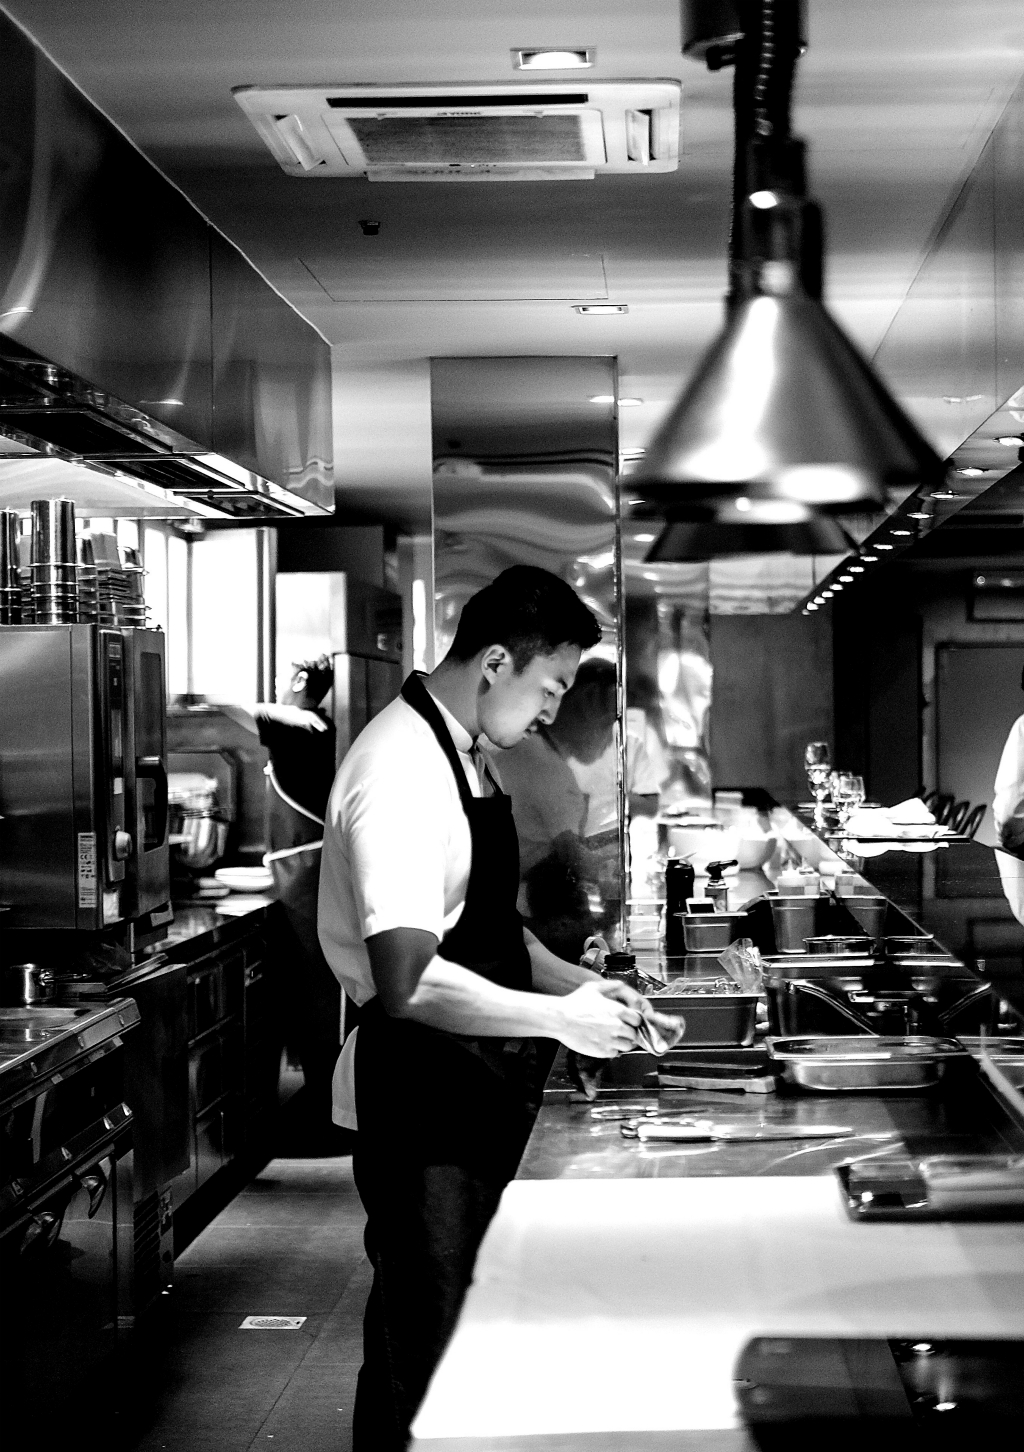 Meta Restaurant's kitchen